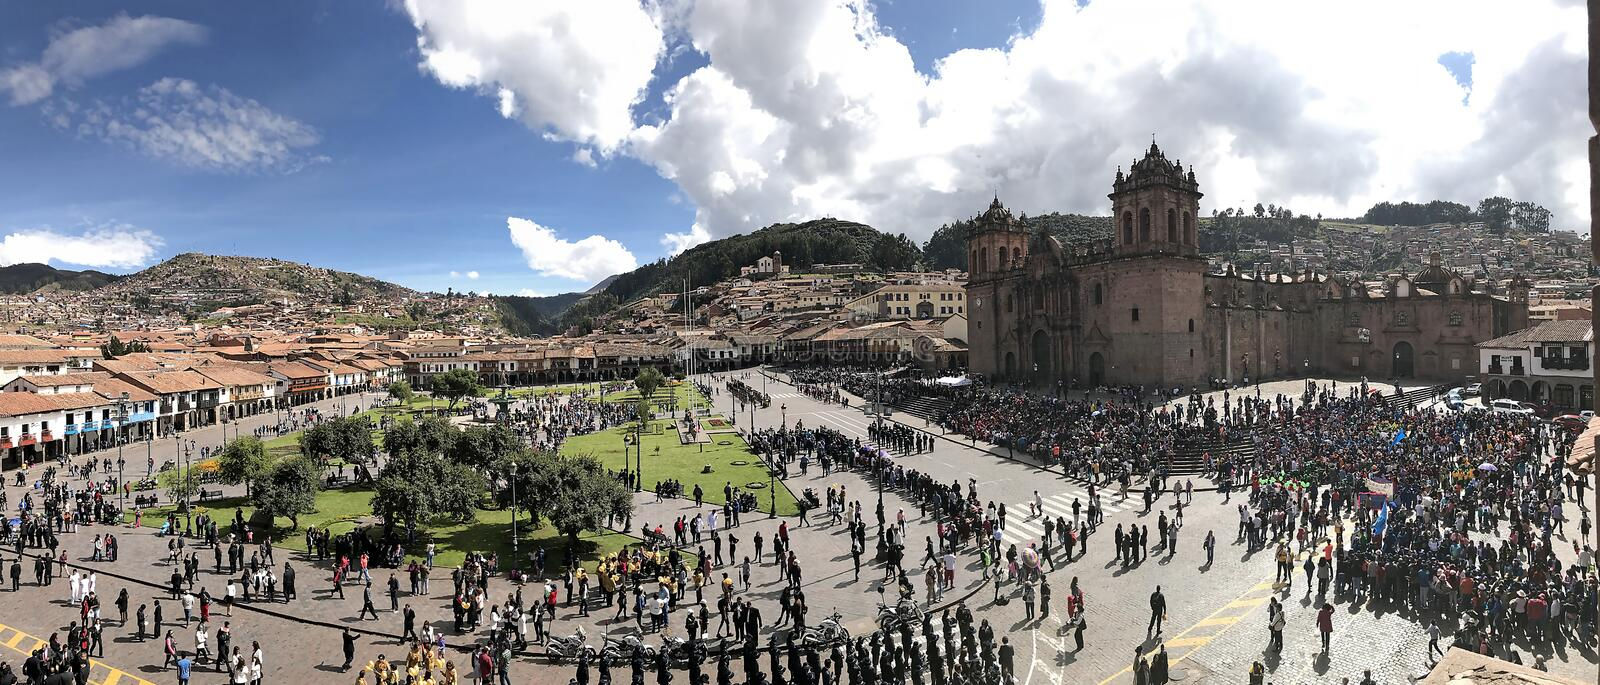 General view of the Cusco`s main plaza with crowd royalty free stock photos